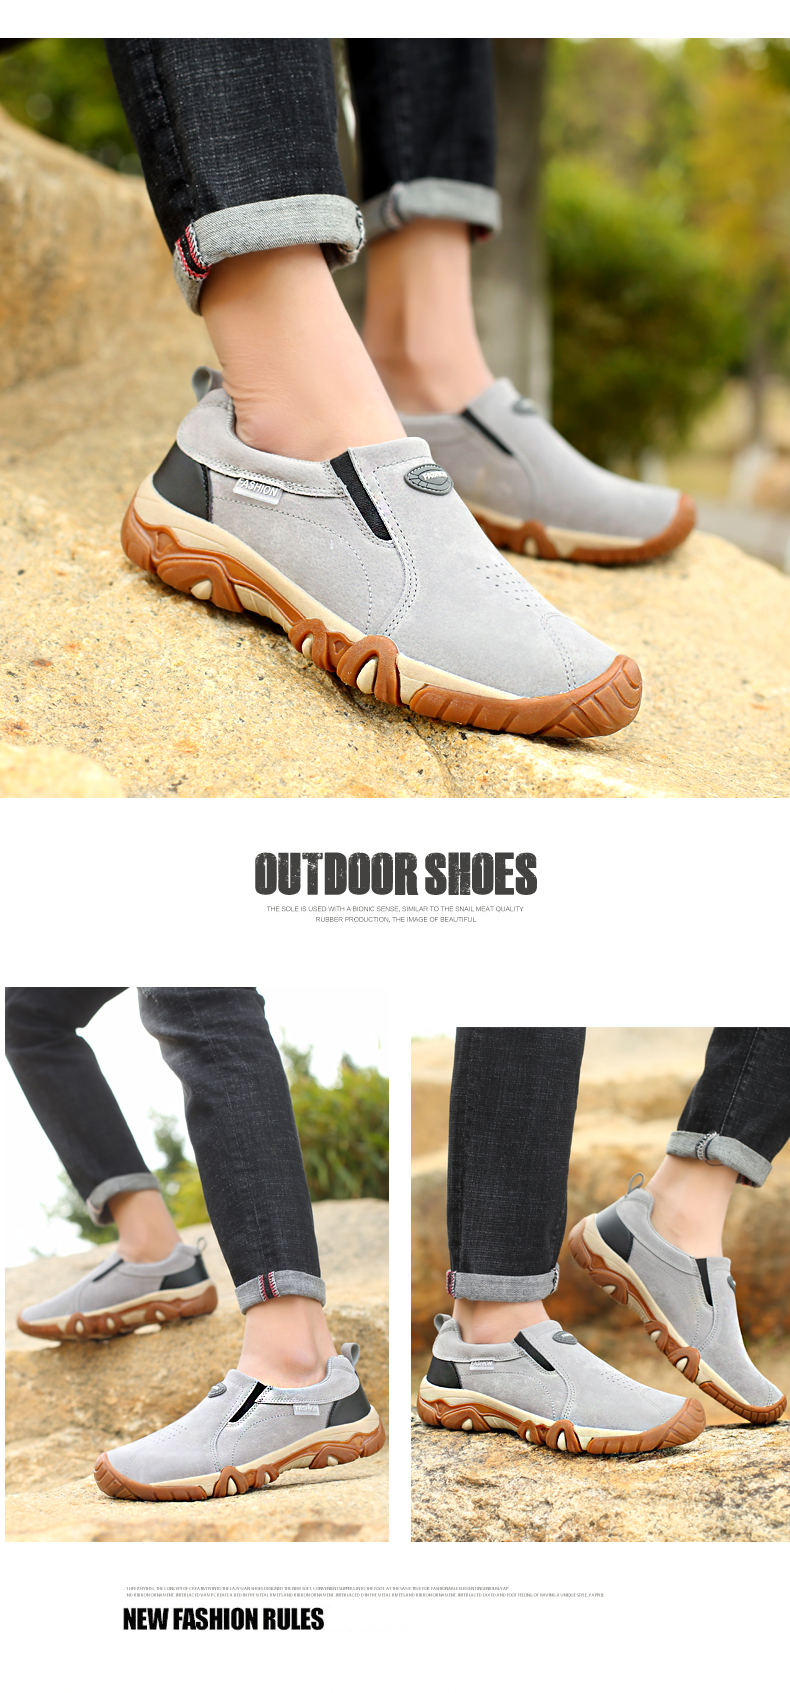 HTB1ByRHaPzuK1Rjy0Fpq6yEpFXa7 SHANTA 2019 New Men Shoes Leather Loafers Breathable Spring Autumn Casual Shoes Outdoor Non Slip Men Sneakers